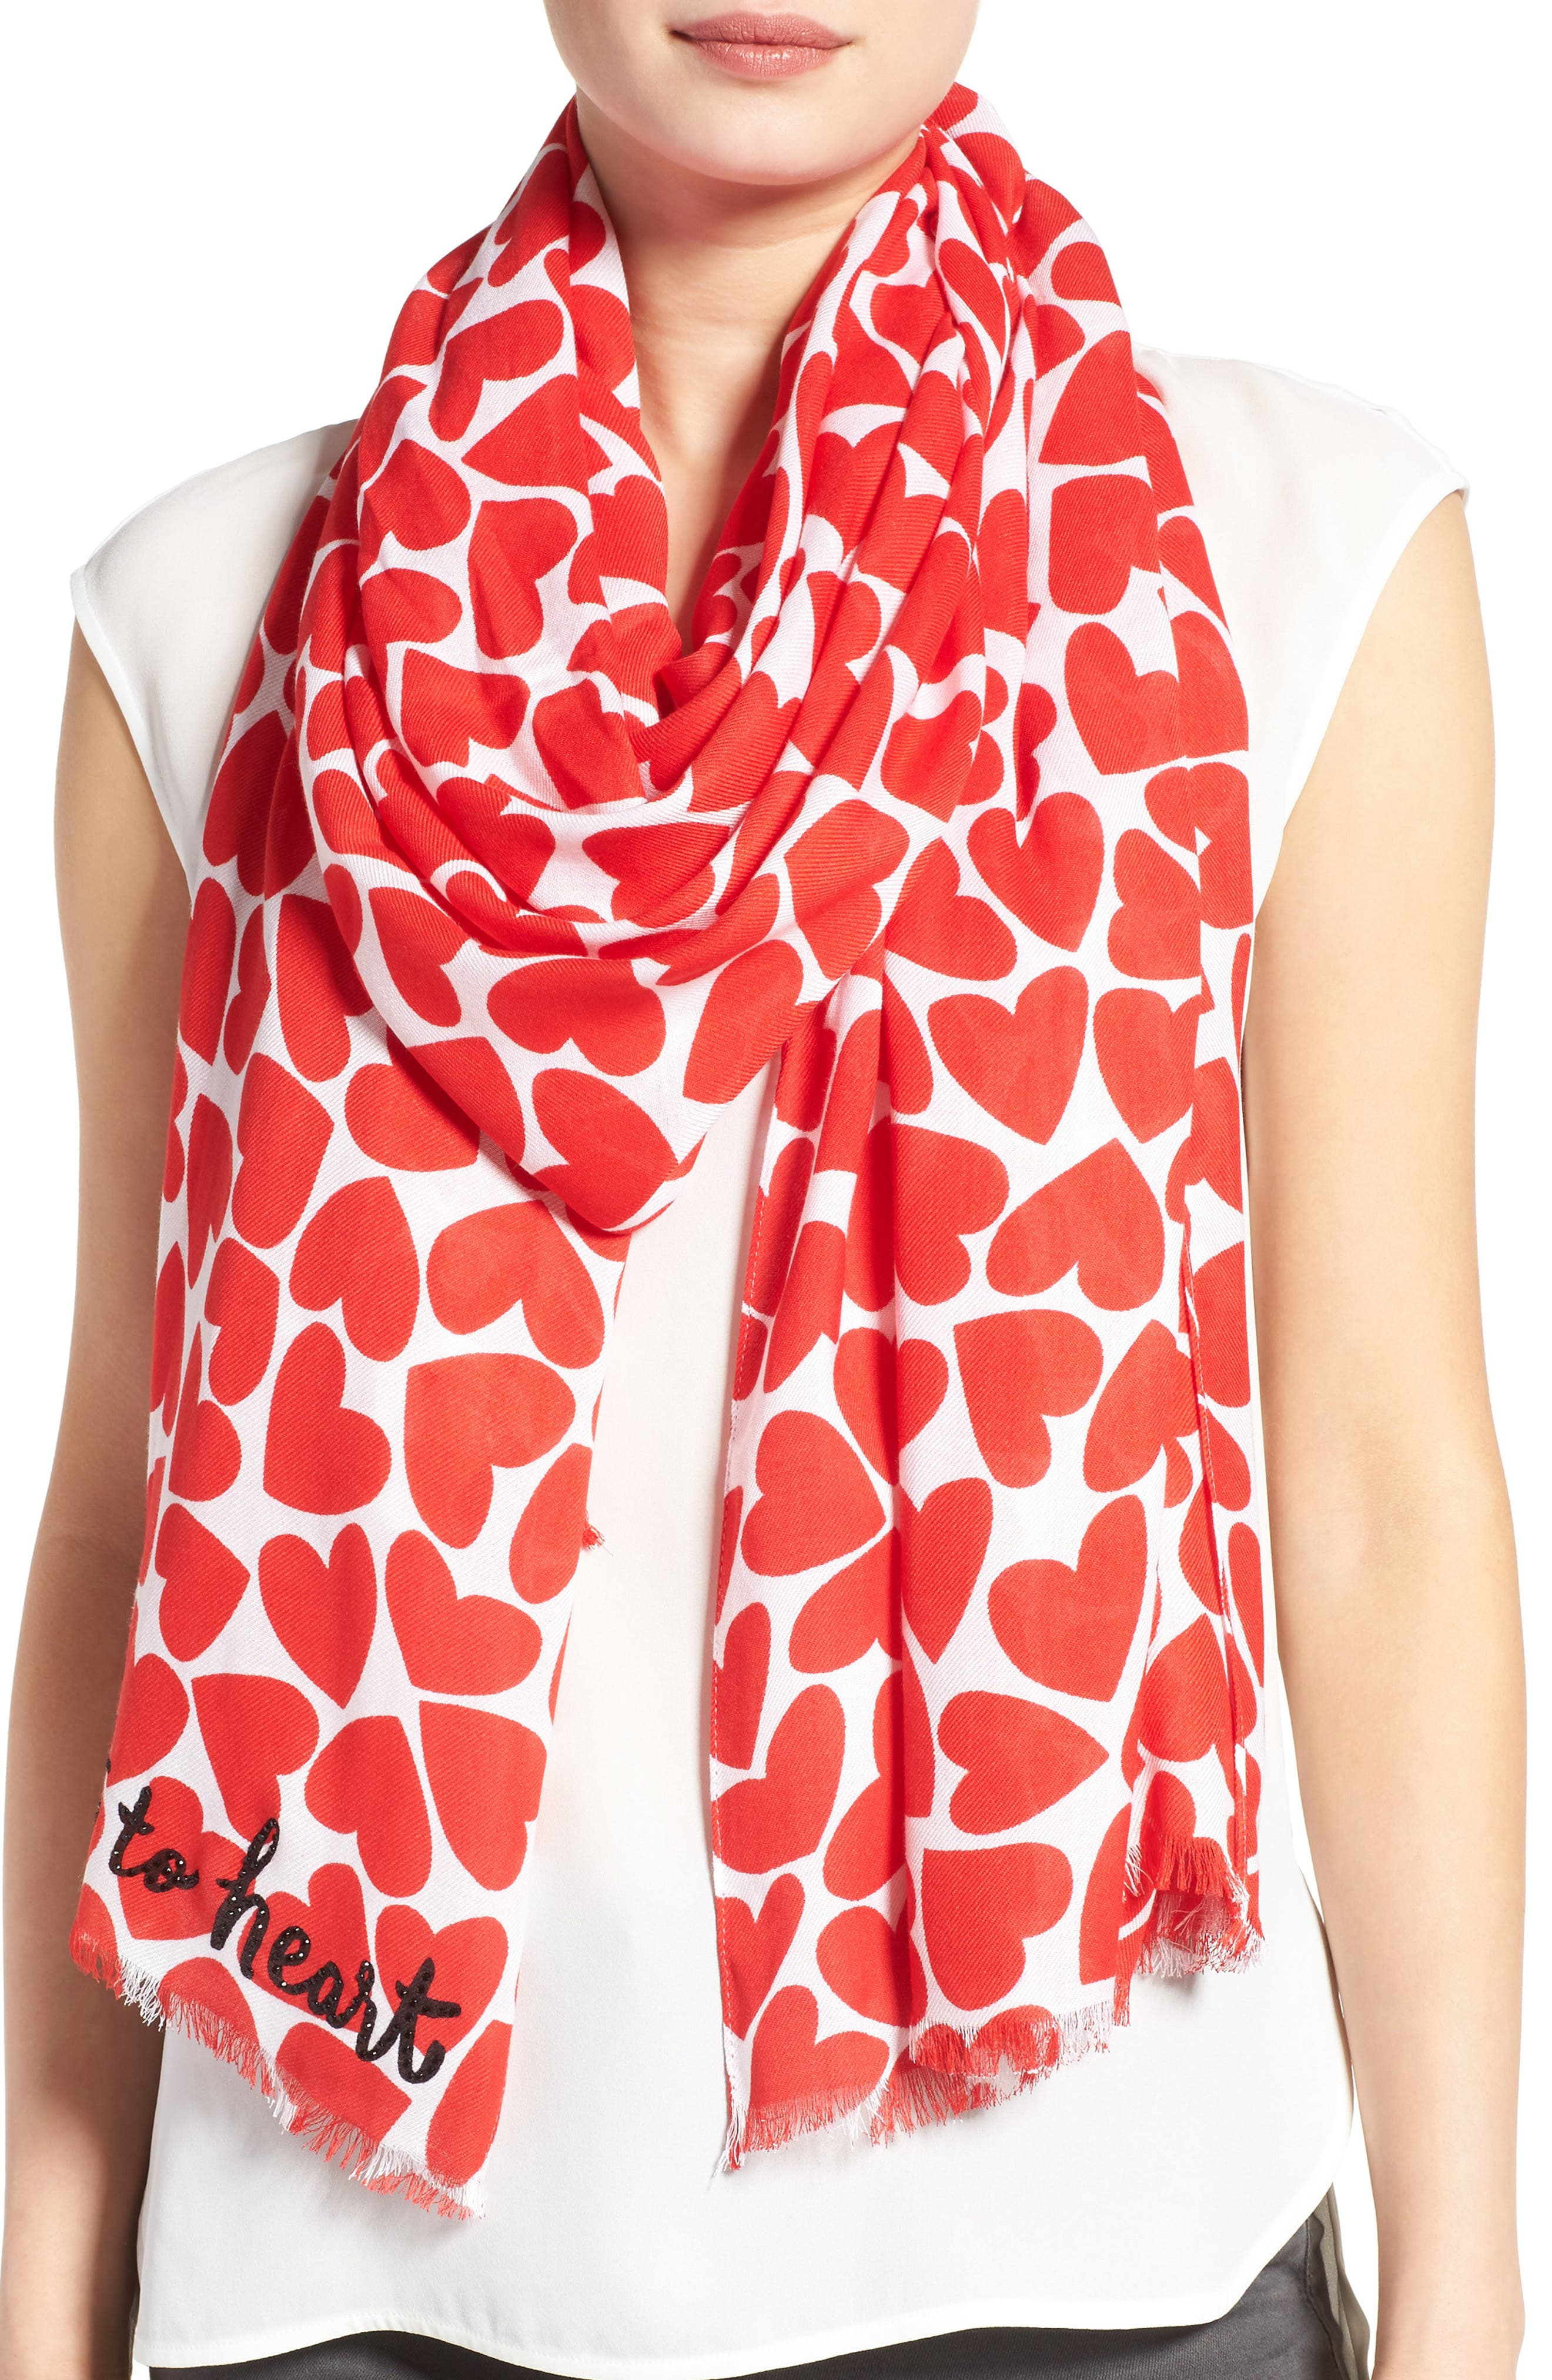 KATE SPADE NEW YORK,                             heart to heart scarf,                             Main thumbnail 1, color,                             607